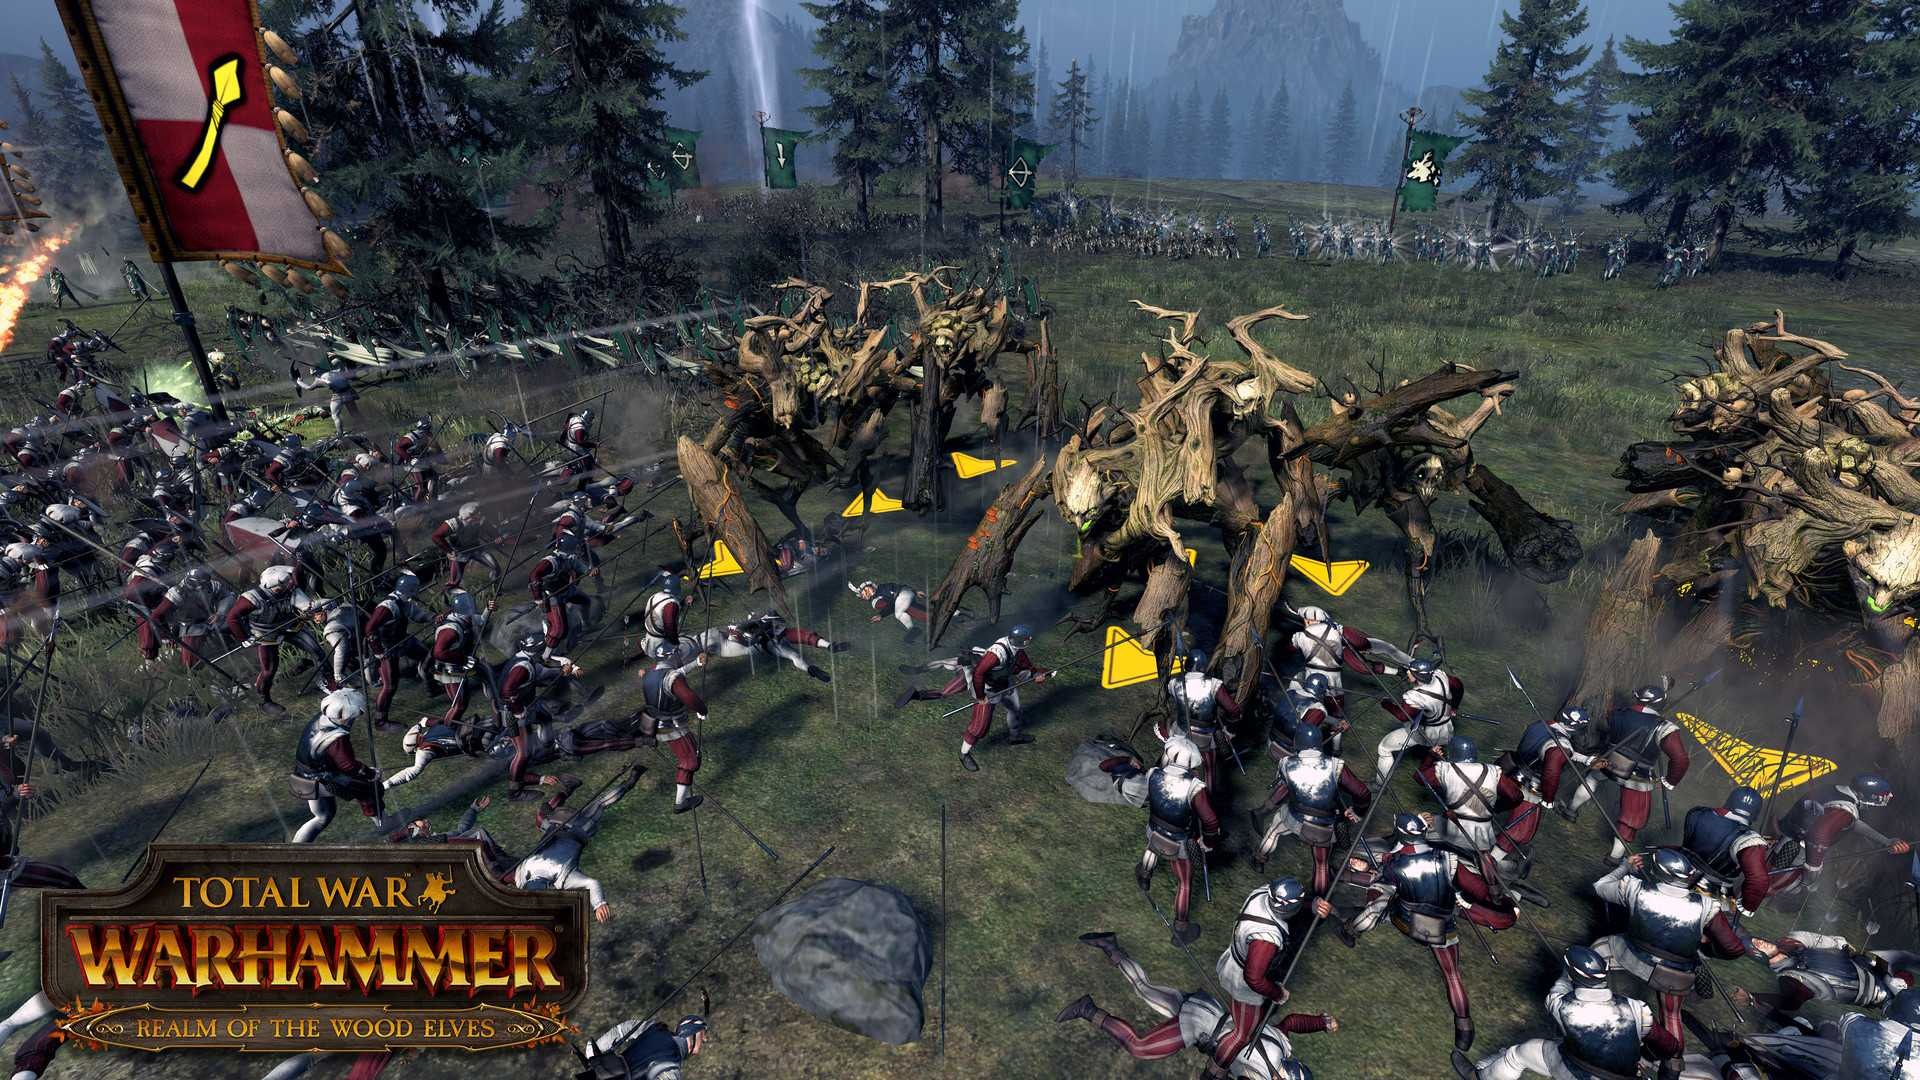 Распродажа игры Total War: WARHAMMER - Realm of The Wood Elves